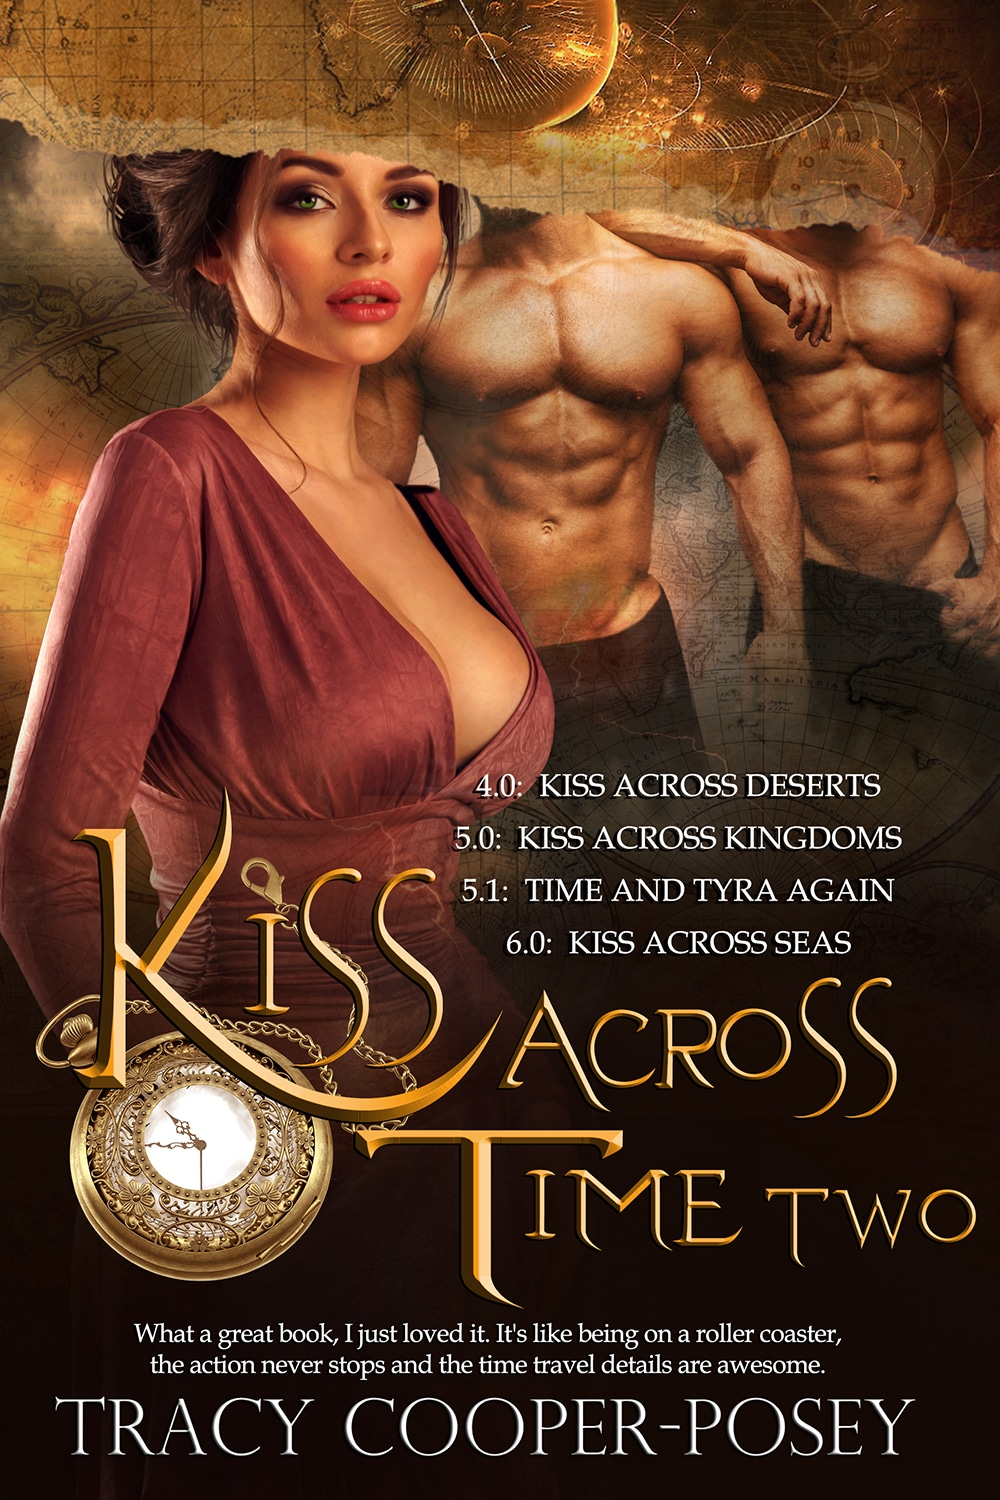 More Vampire Time Travel Romance Adventures